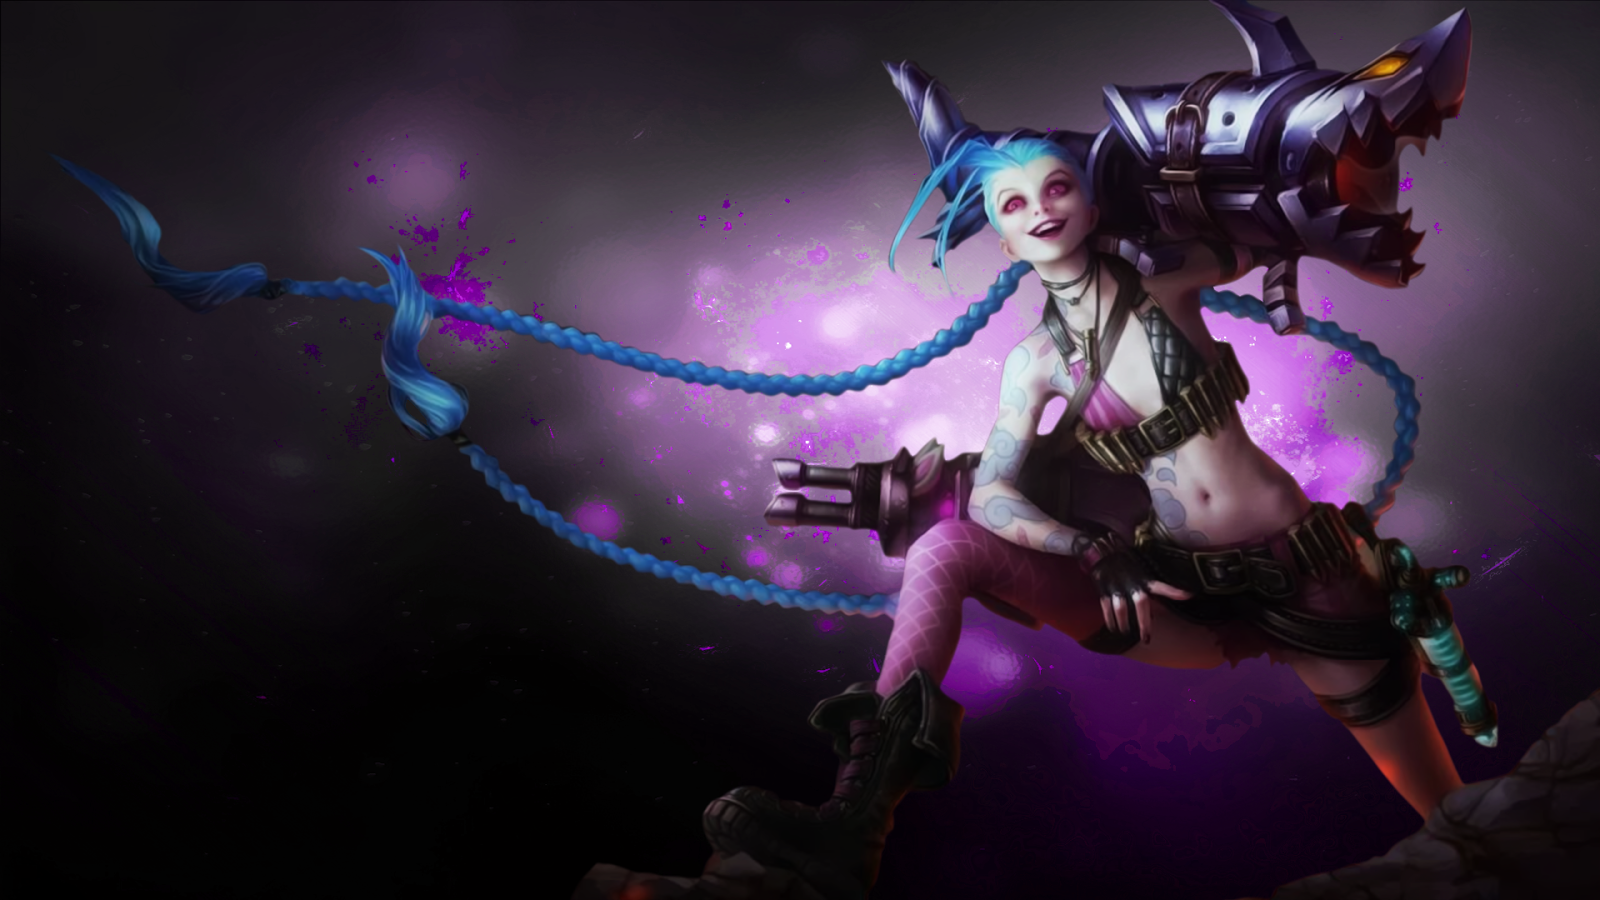 Jinx Wallpaper Hd Jinx Desktop Backgrounds Jinx LOL Champion Wallpapers Free Download